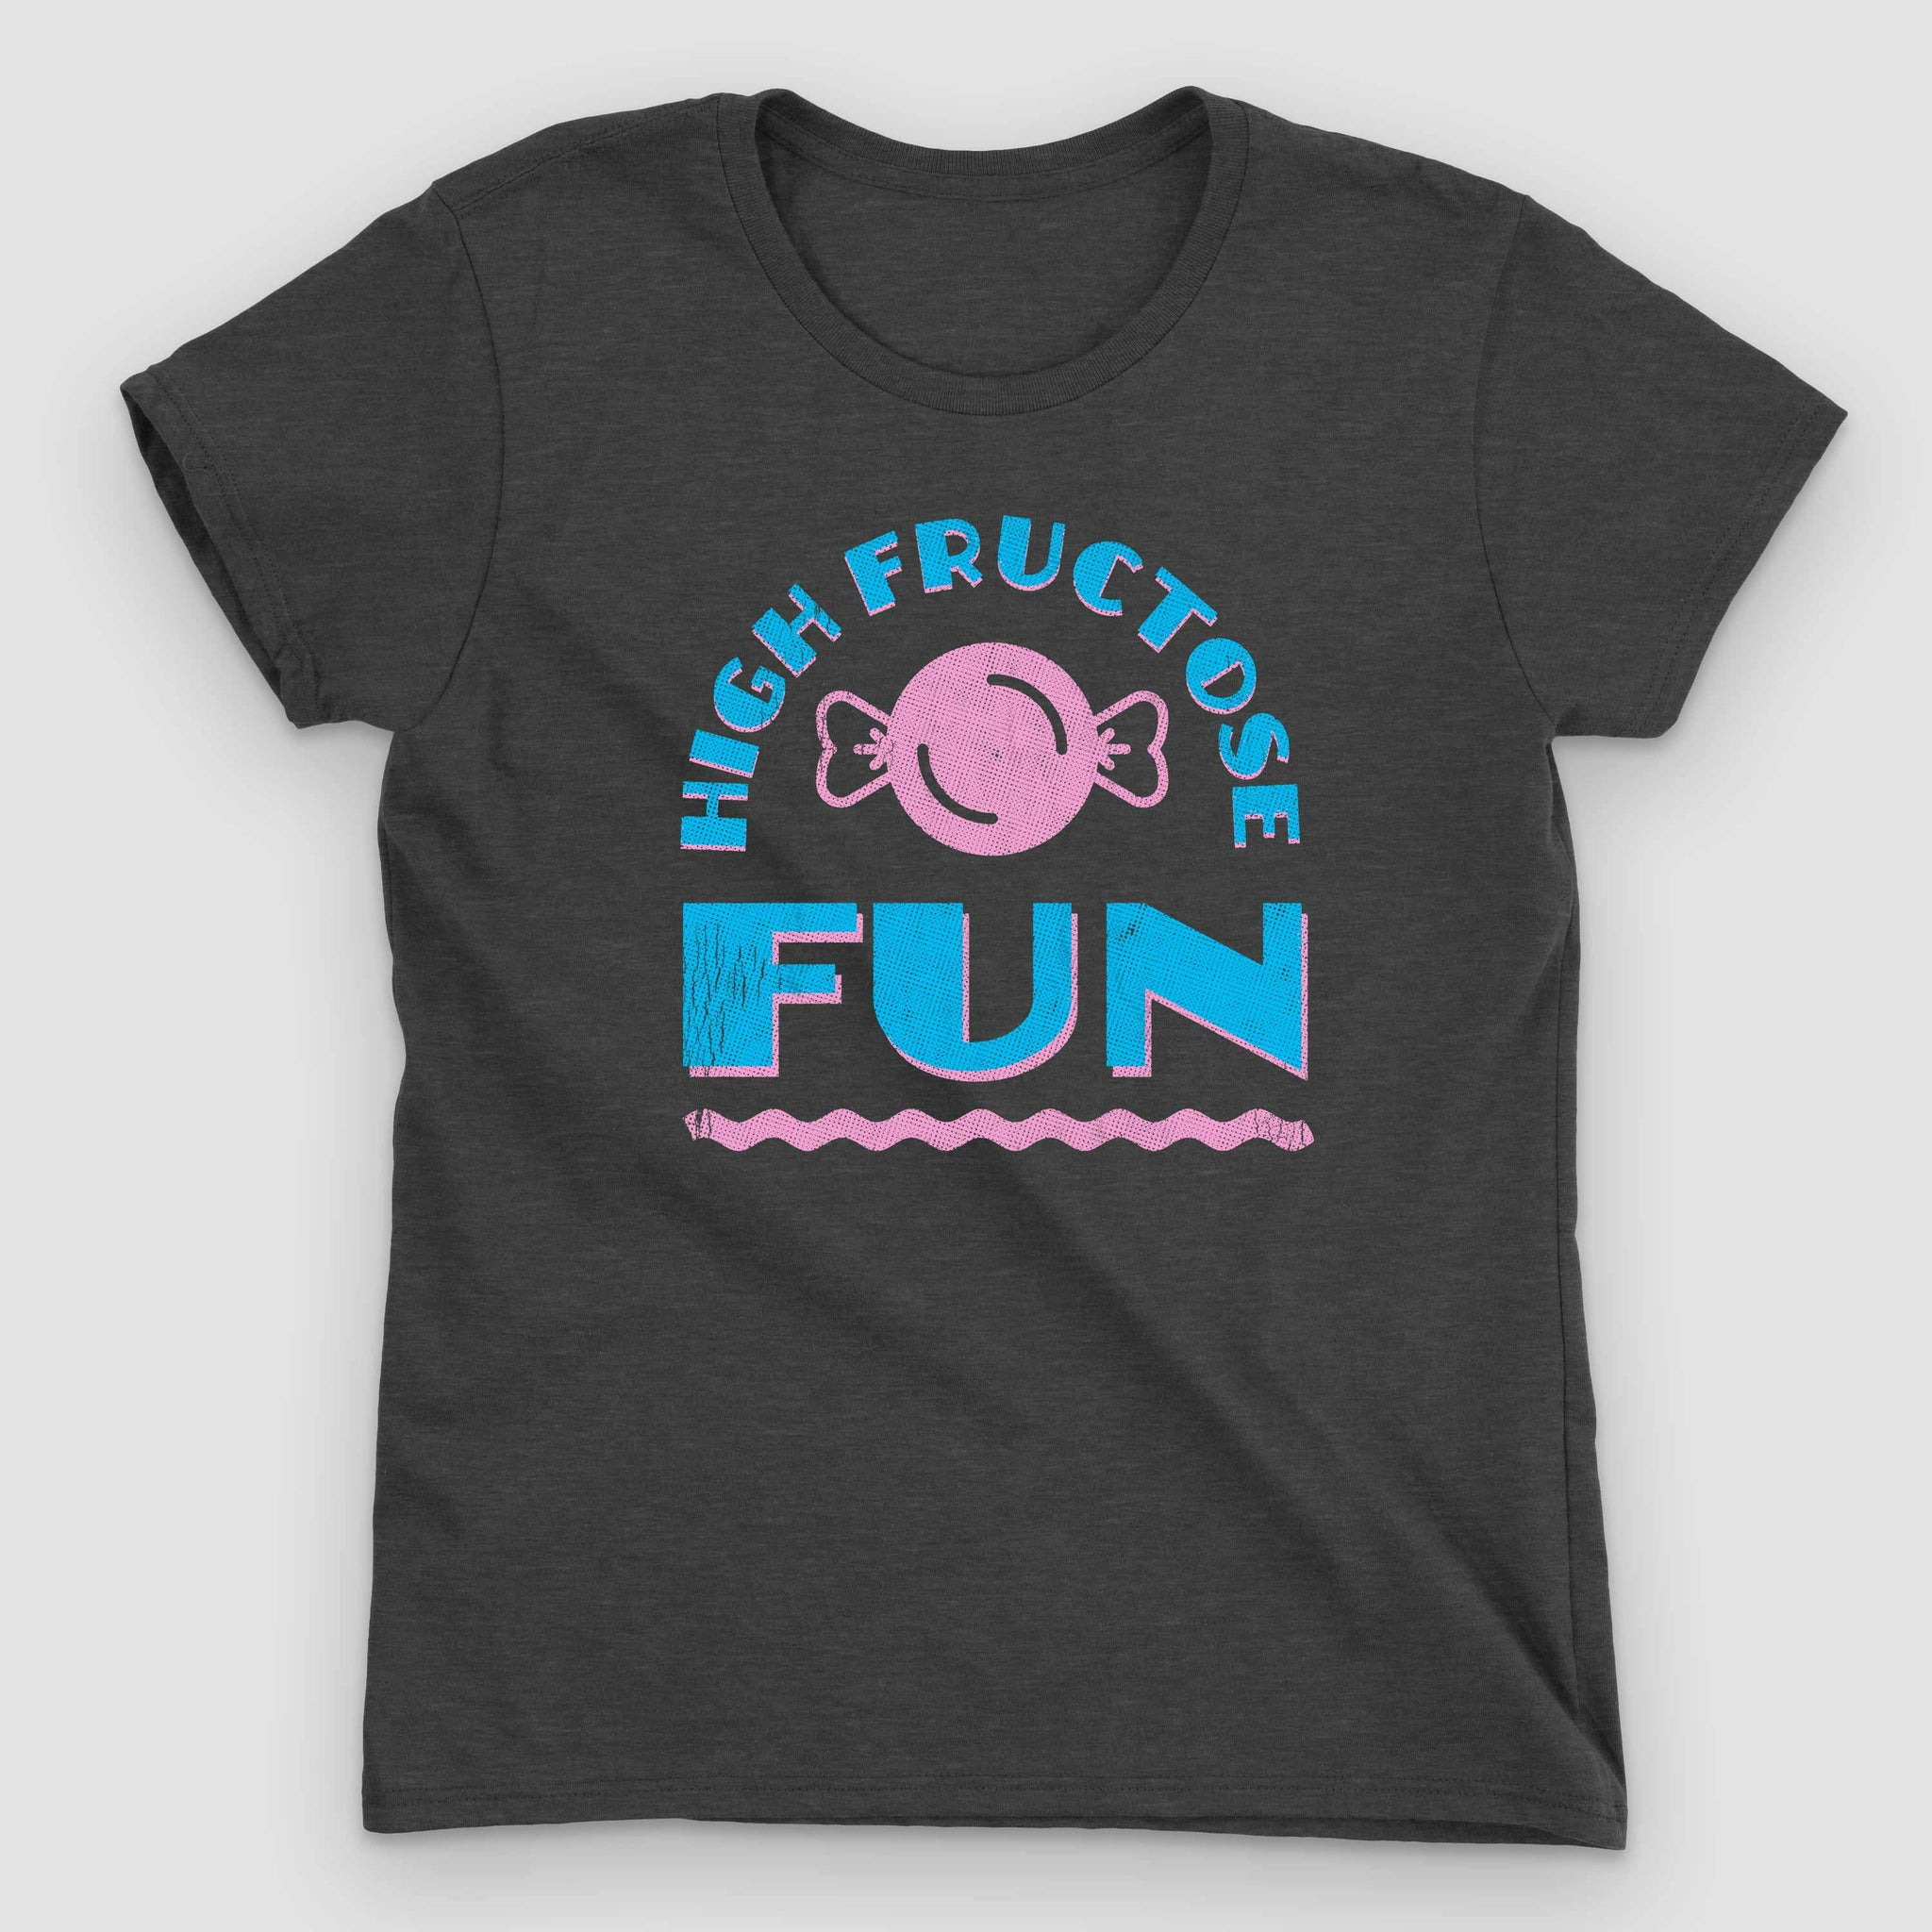 High Fructose Fun Women's Graphic T-Shirt